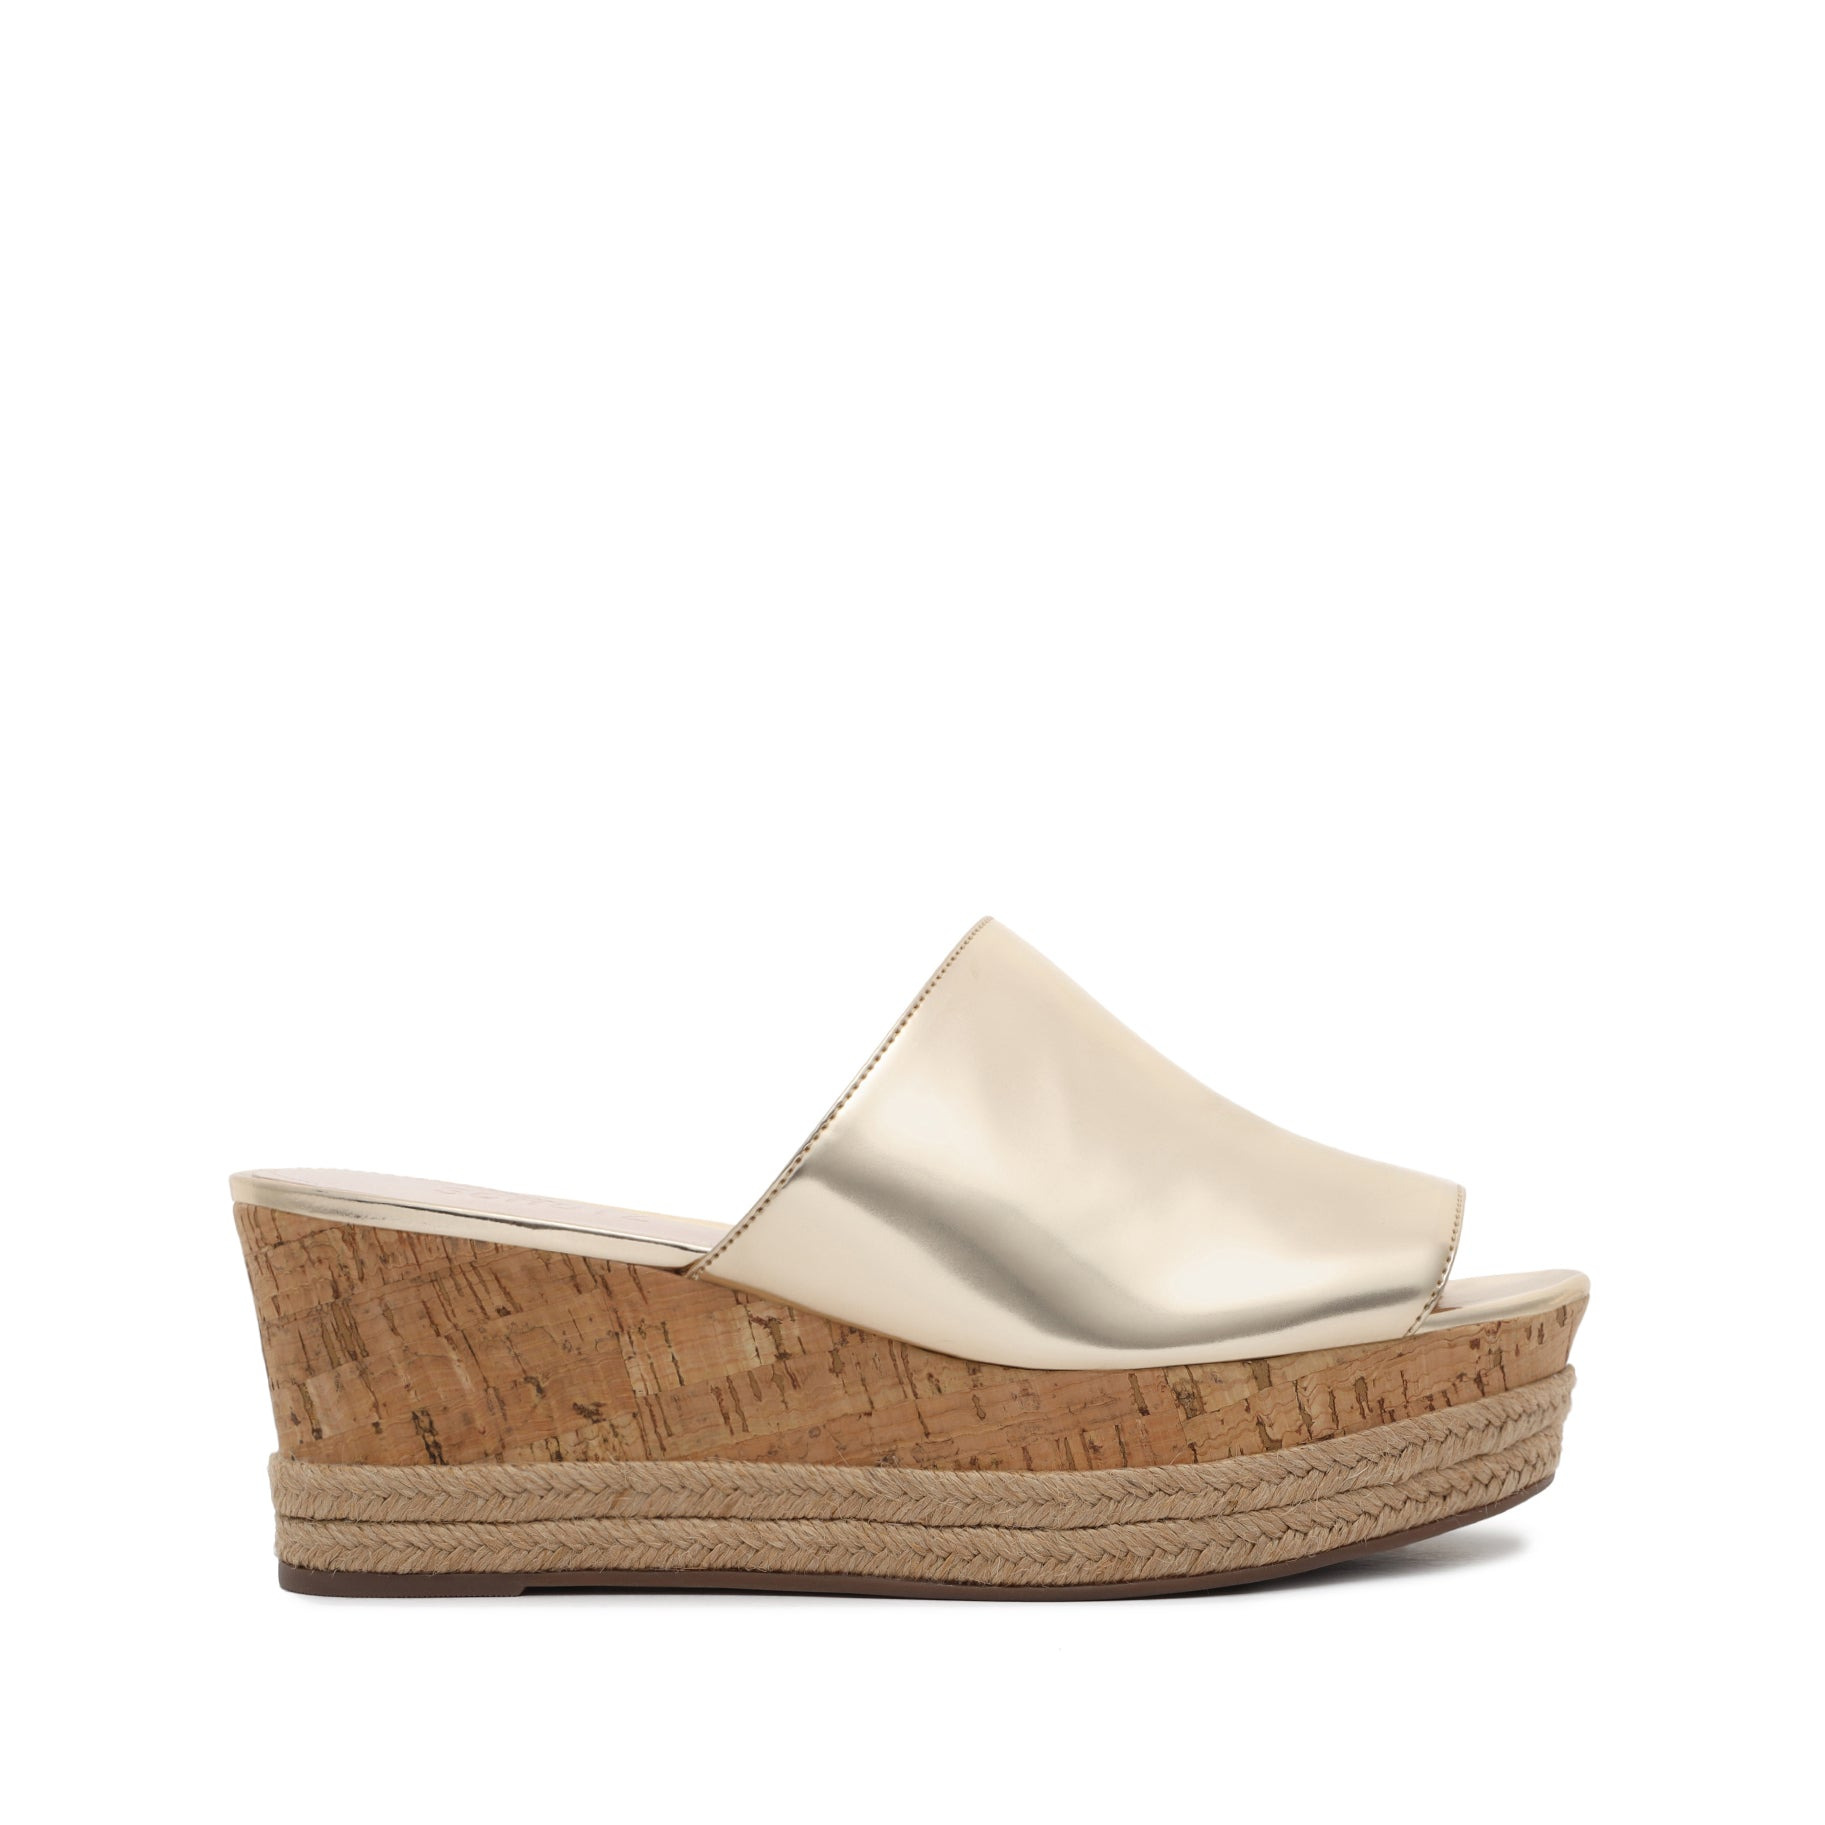 Vilena Wedge Sandal